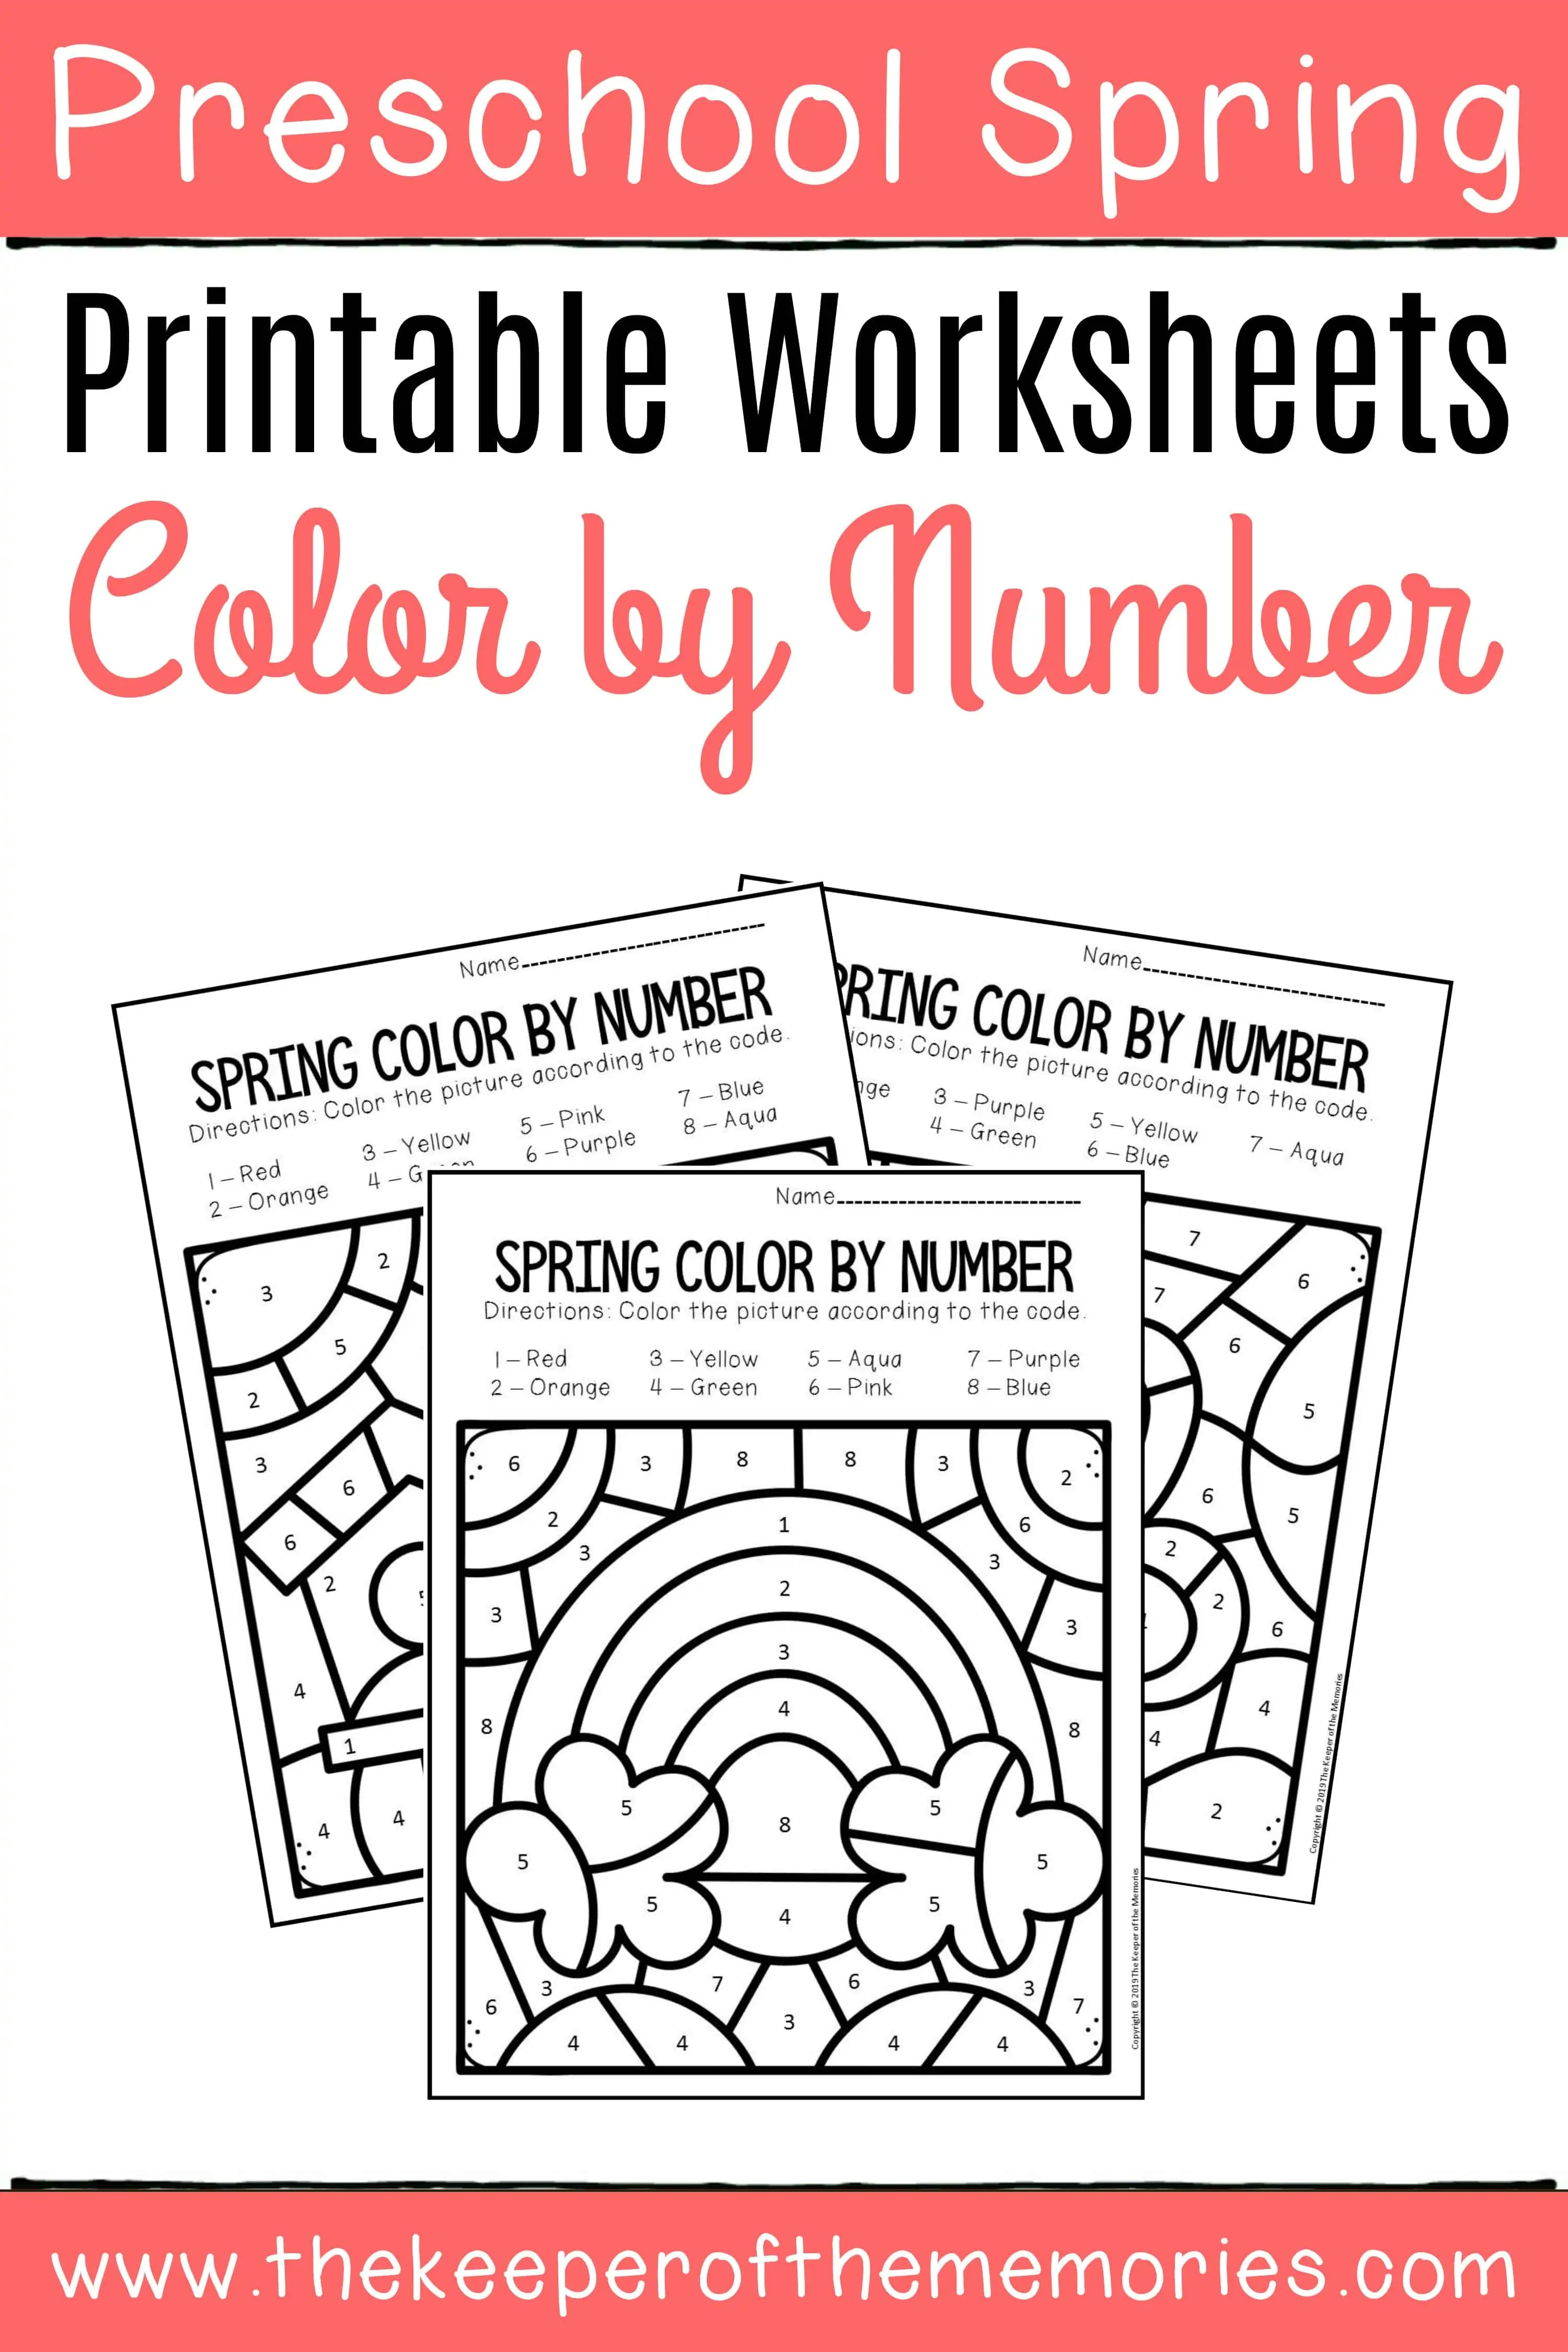 Color By Number Spring Preschool Worksheets